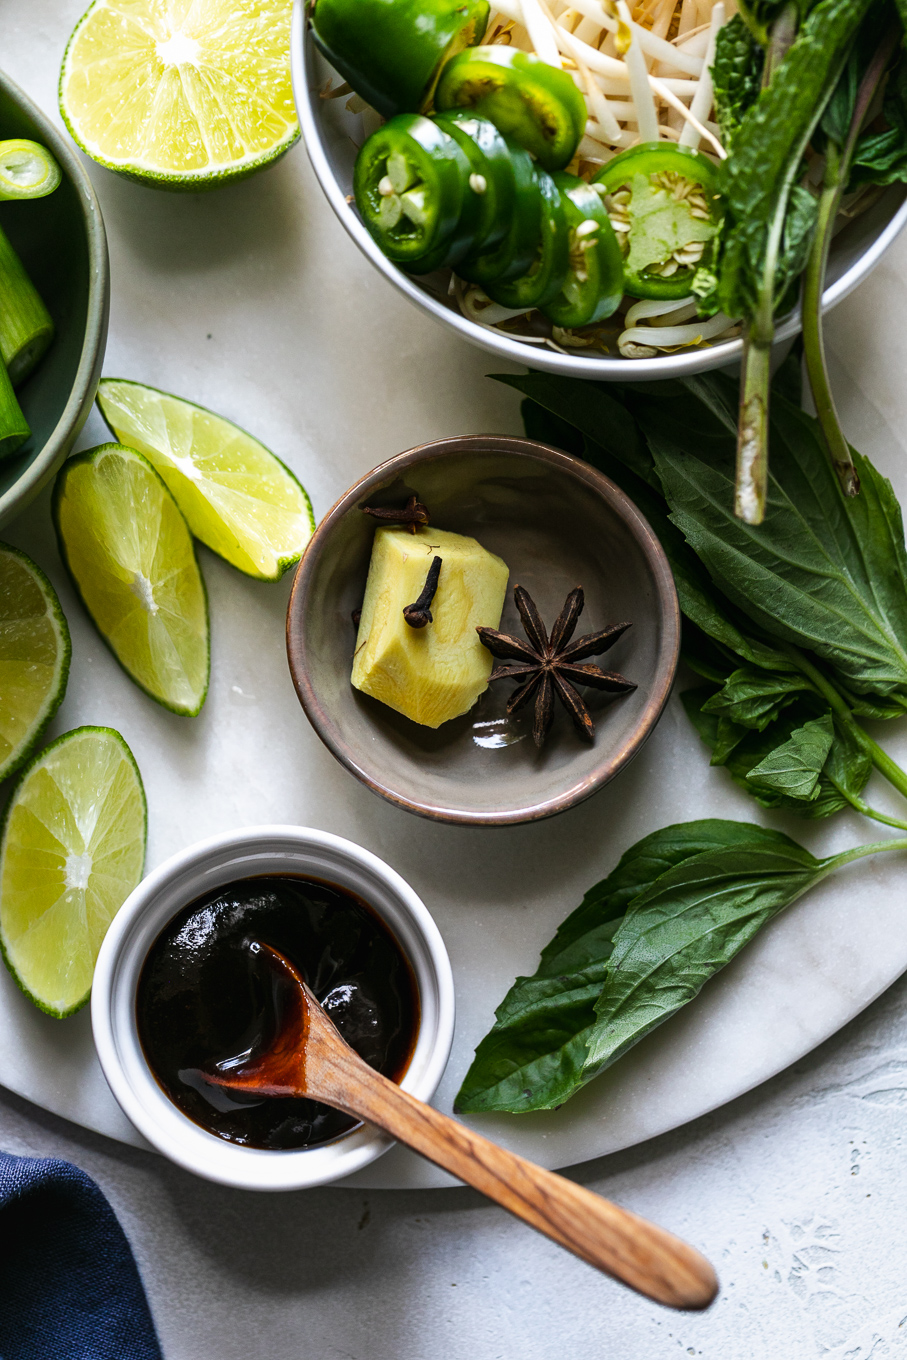 Overhead shot of lime wedges, ginger, sites, herbs, and hoisin sauce